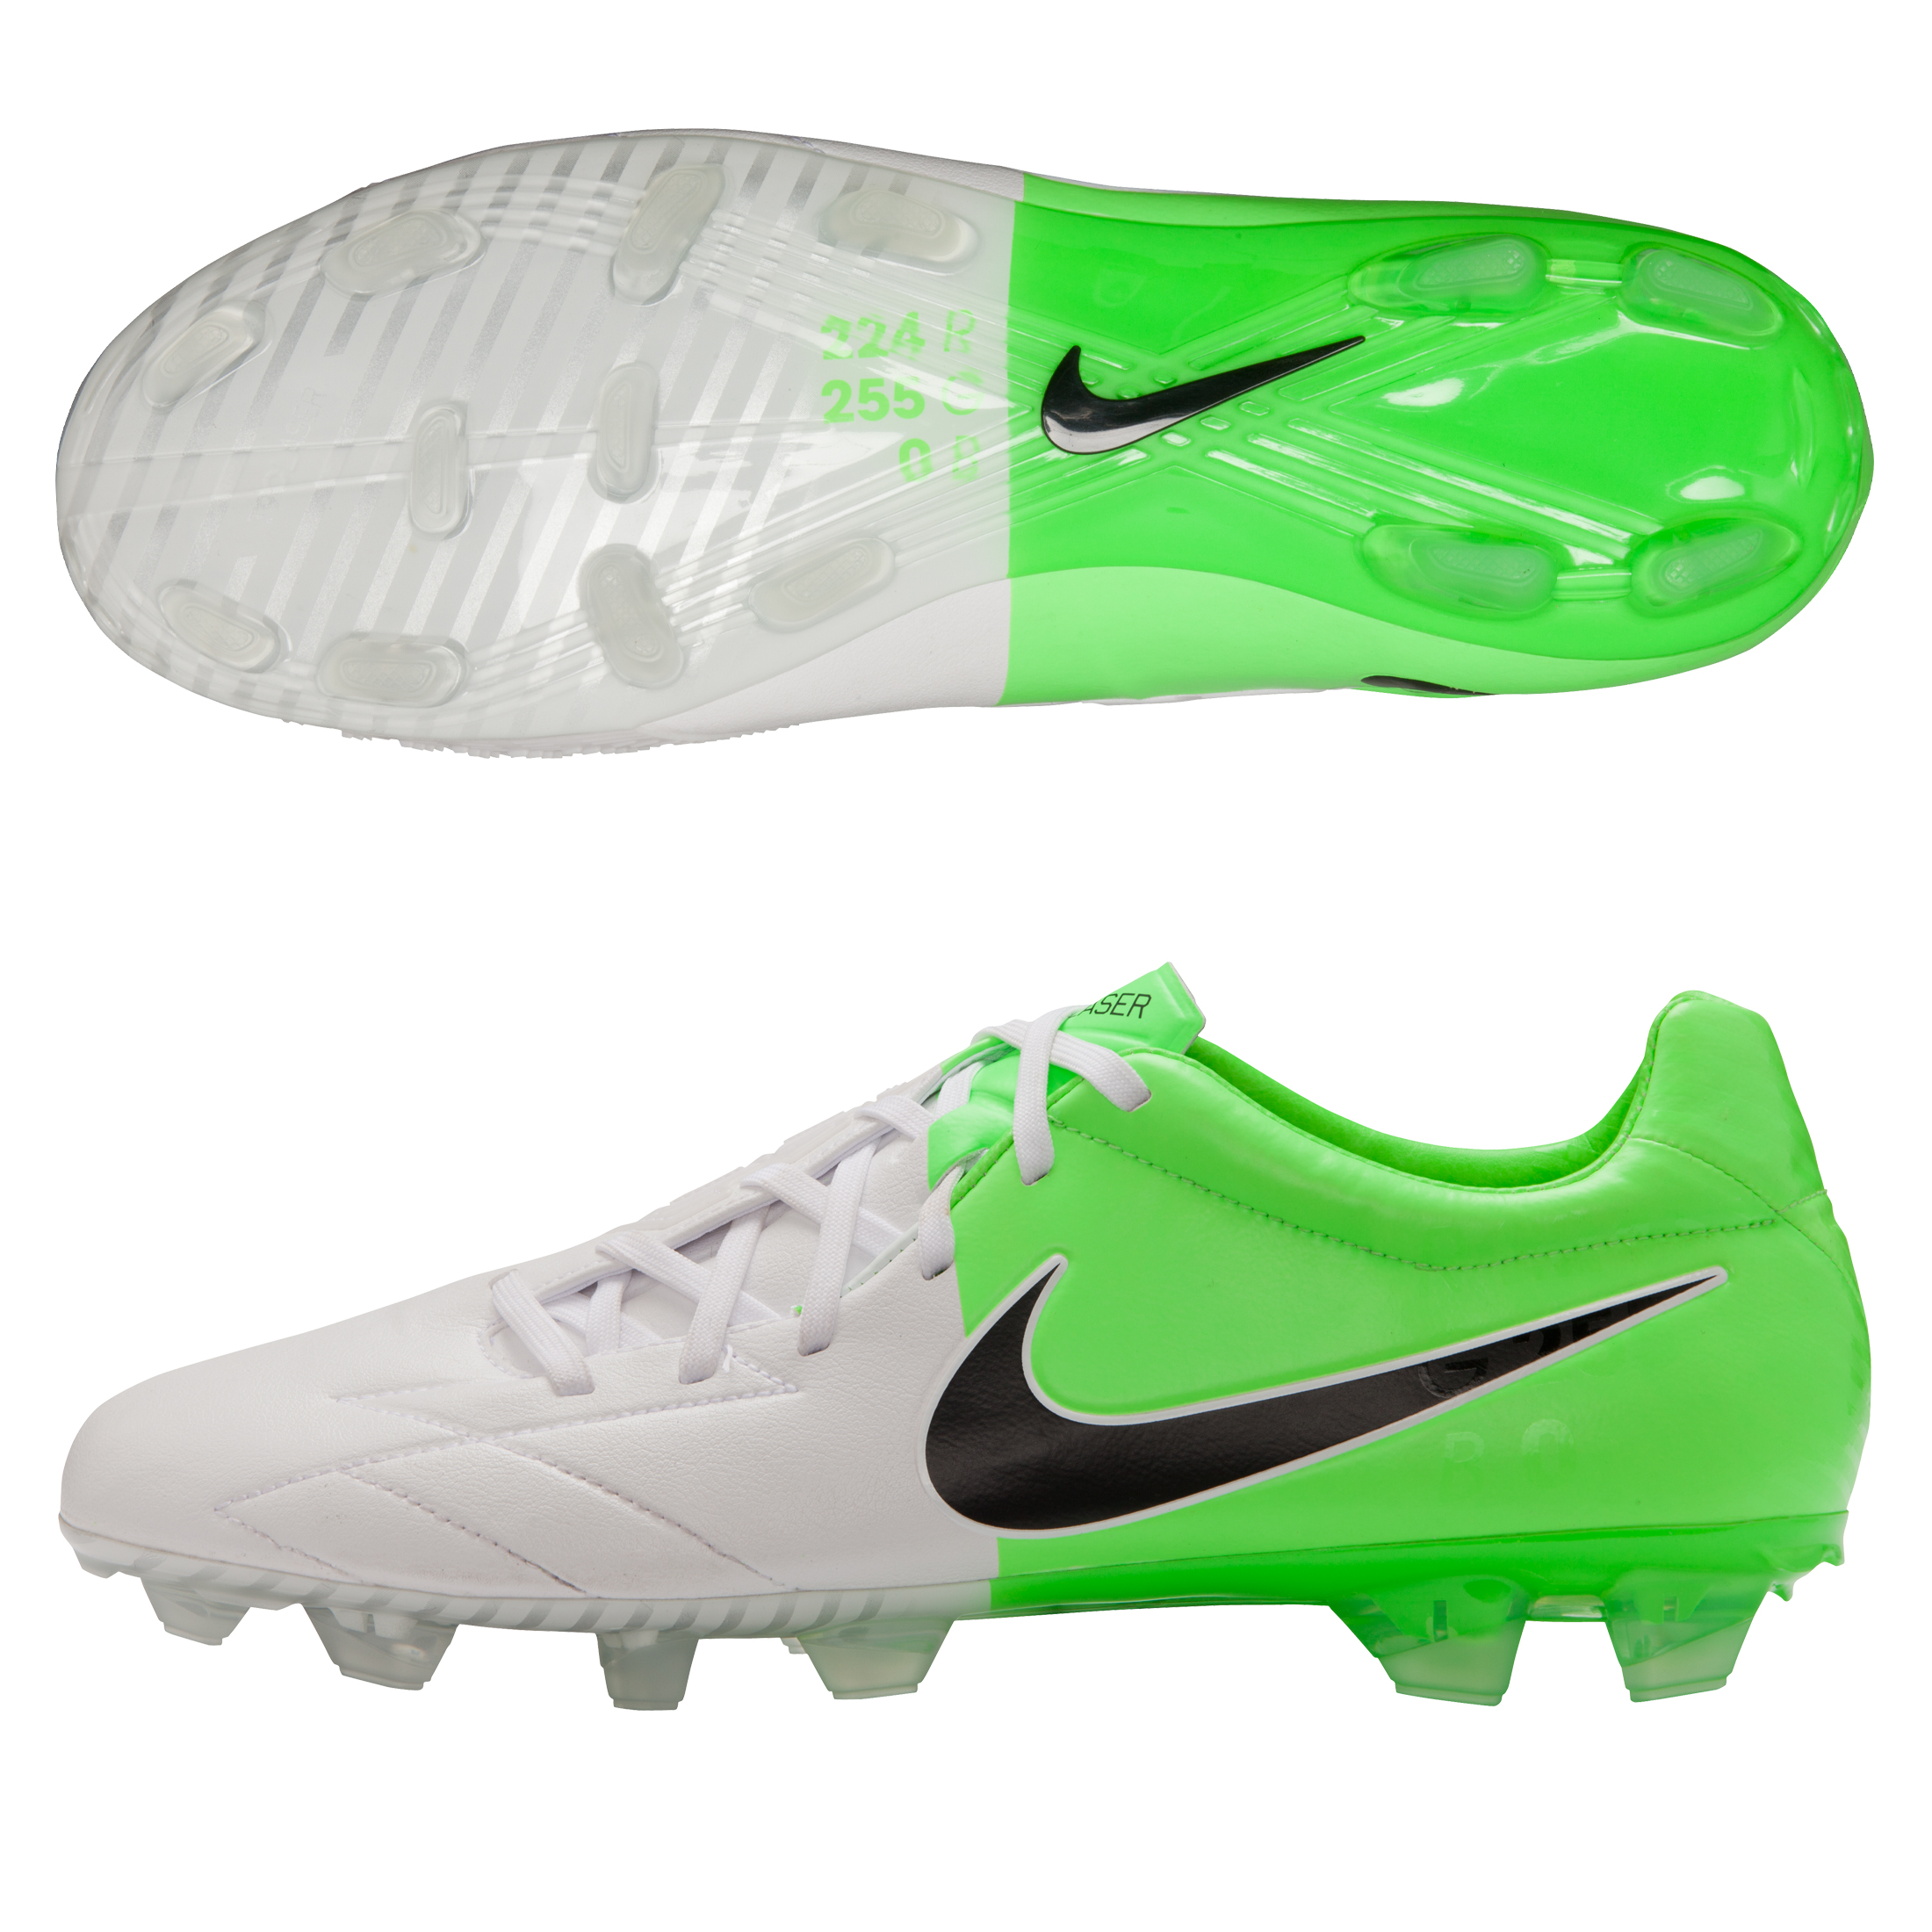 Nike Total90 Laser IV KL Firm Ground Football Boots - White/Black/Electric Green